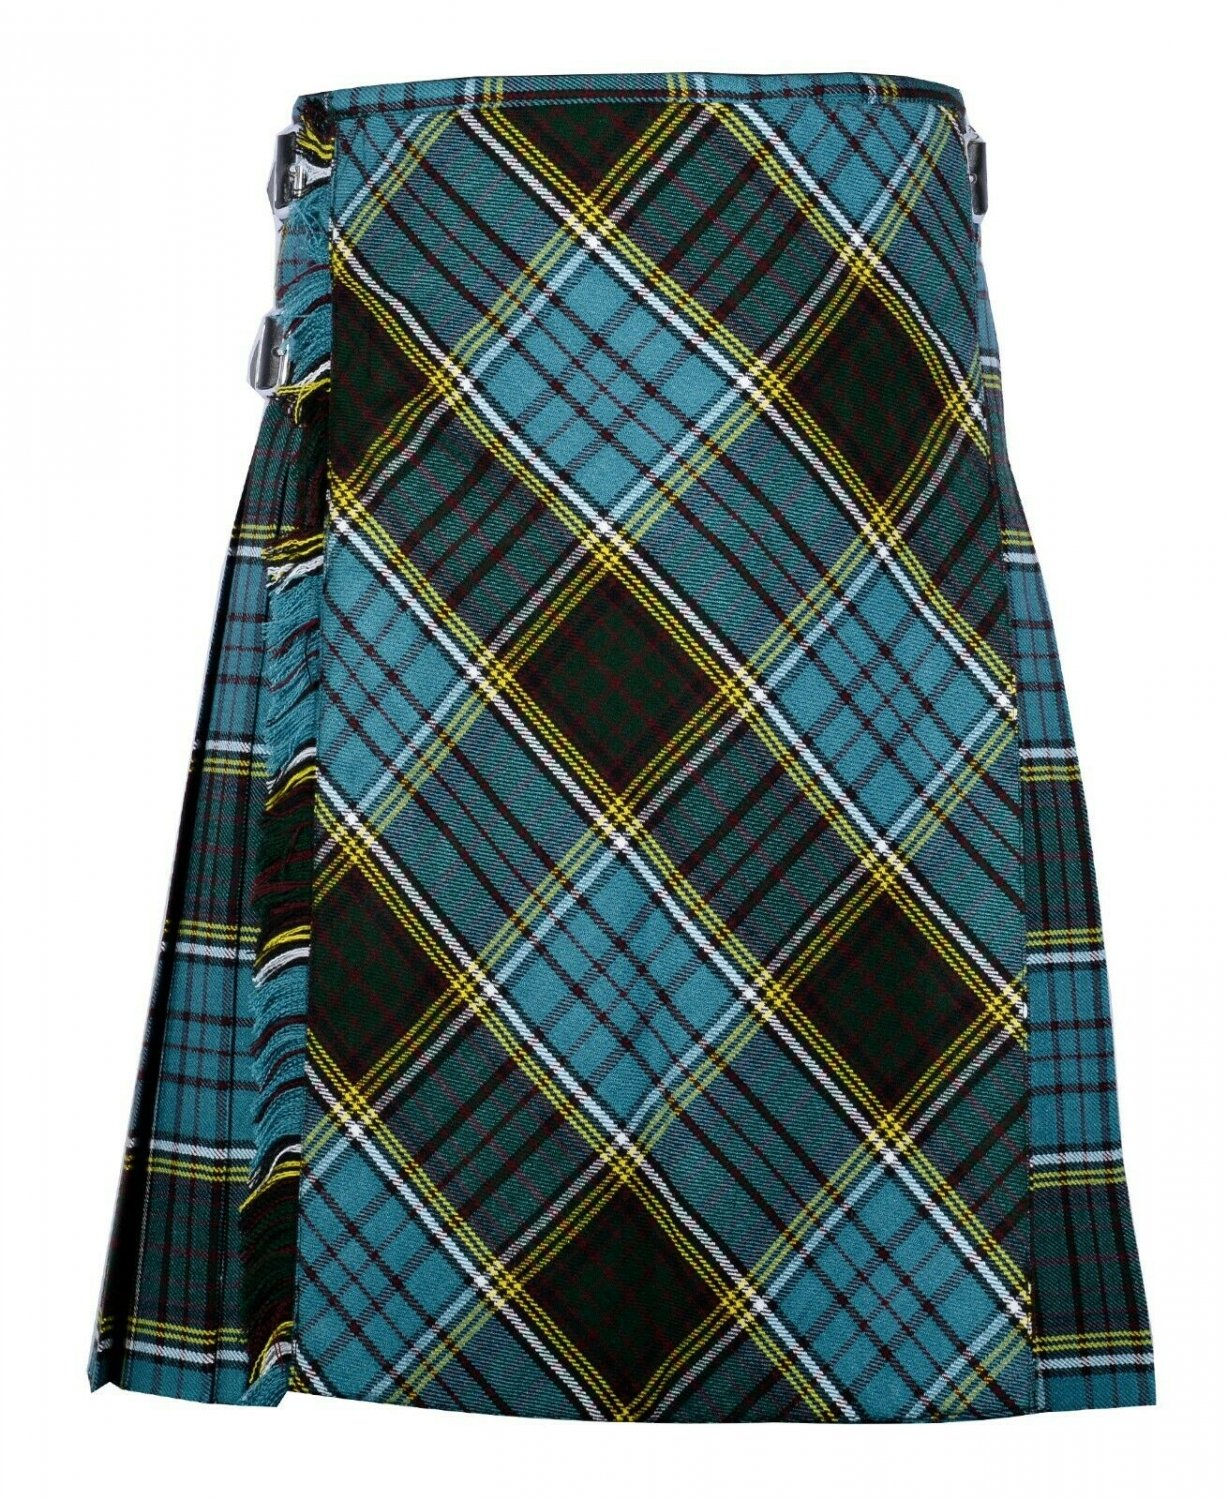 52 size Anderson tartan Bias Apron Traditional 5 Yard Scottish Kilt for Men